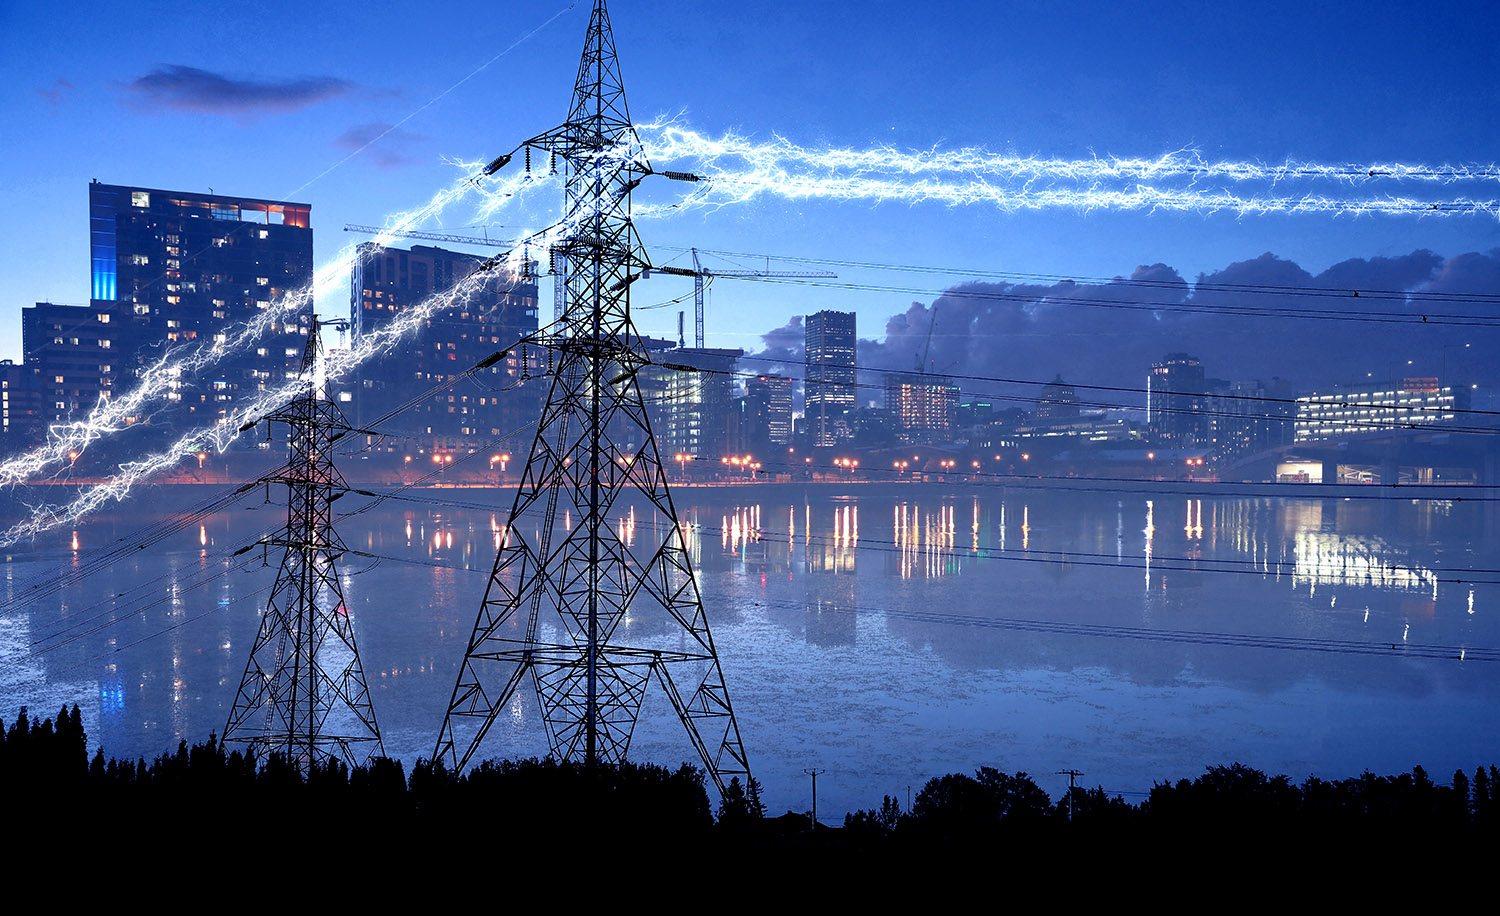 Urban Electrification in Blue - Royalty-Free Stock Imagery